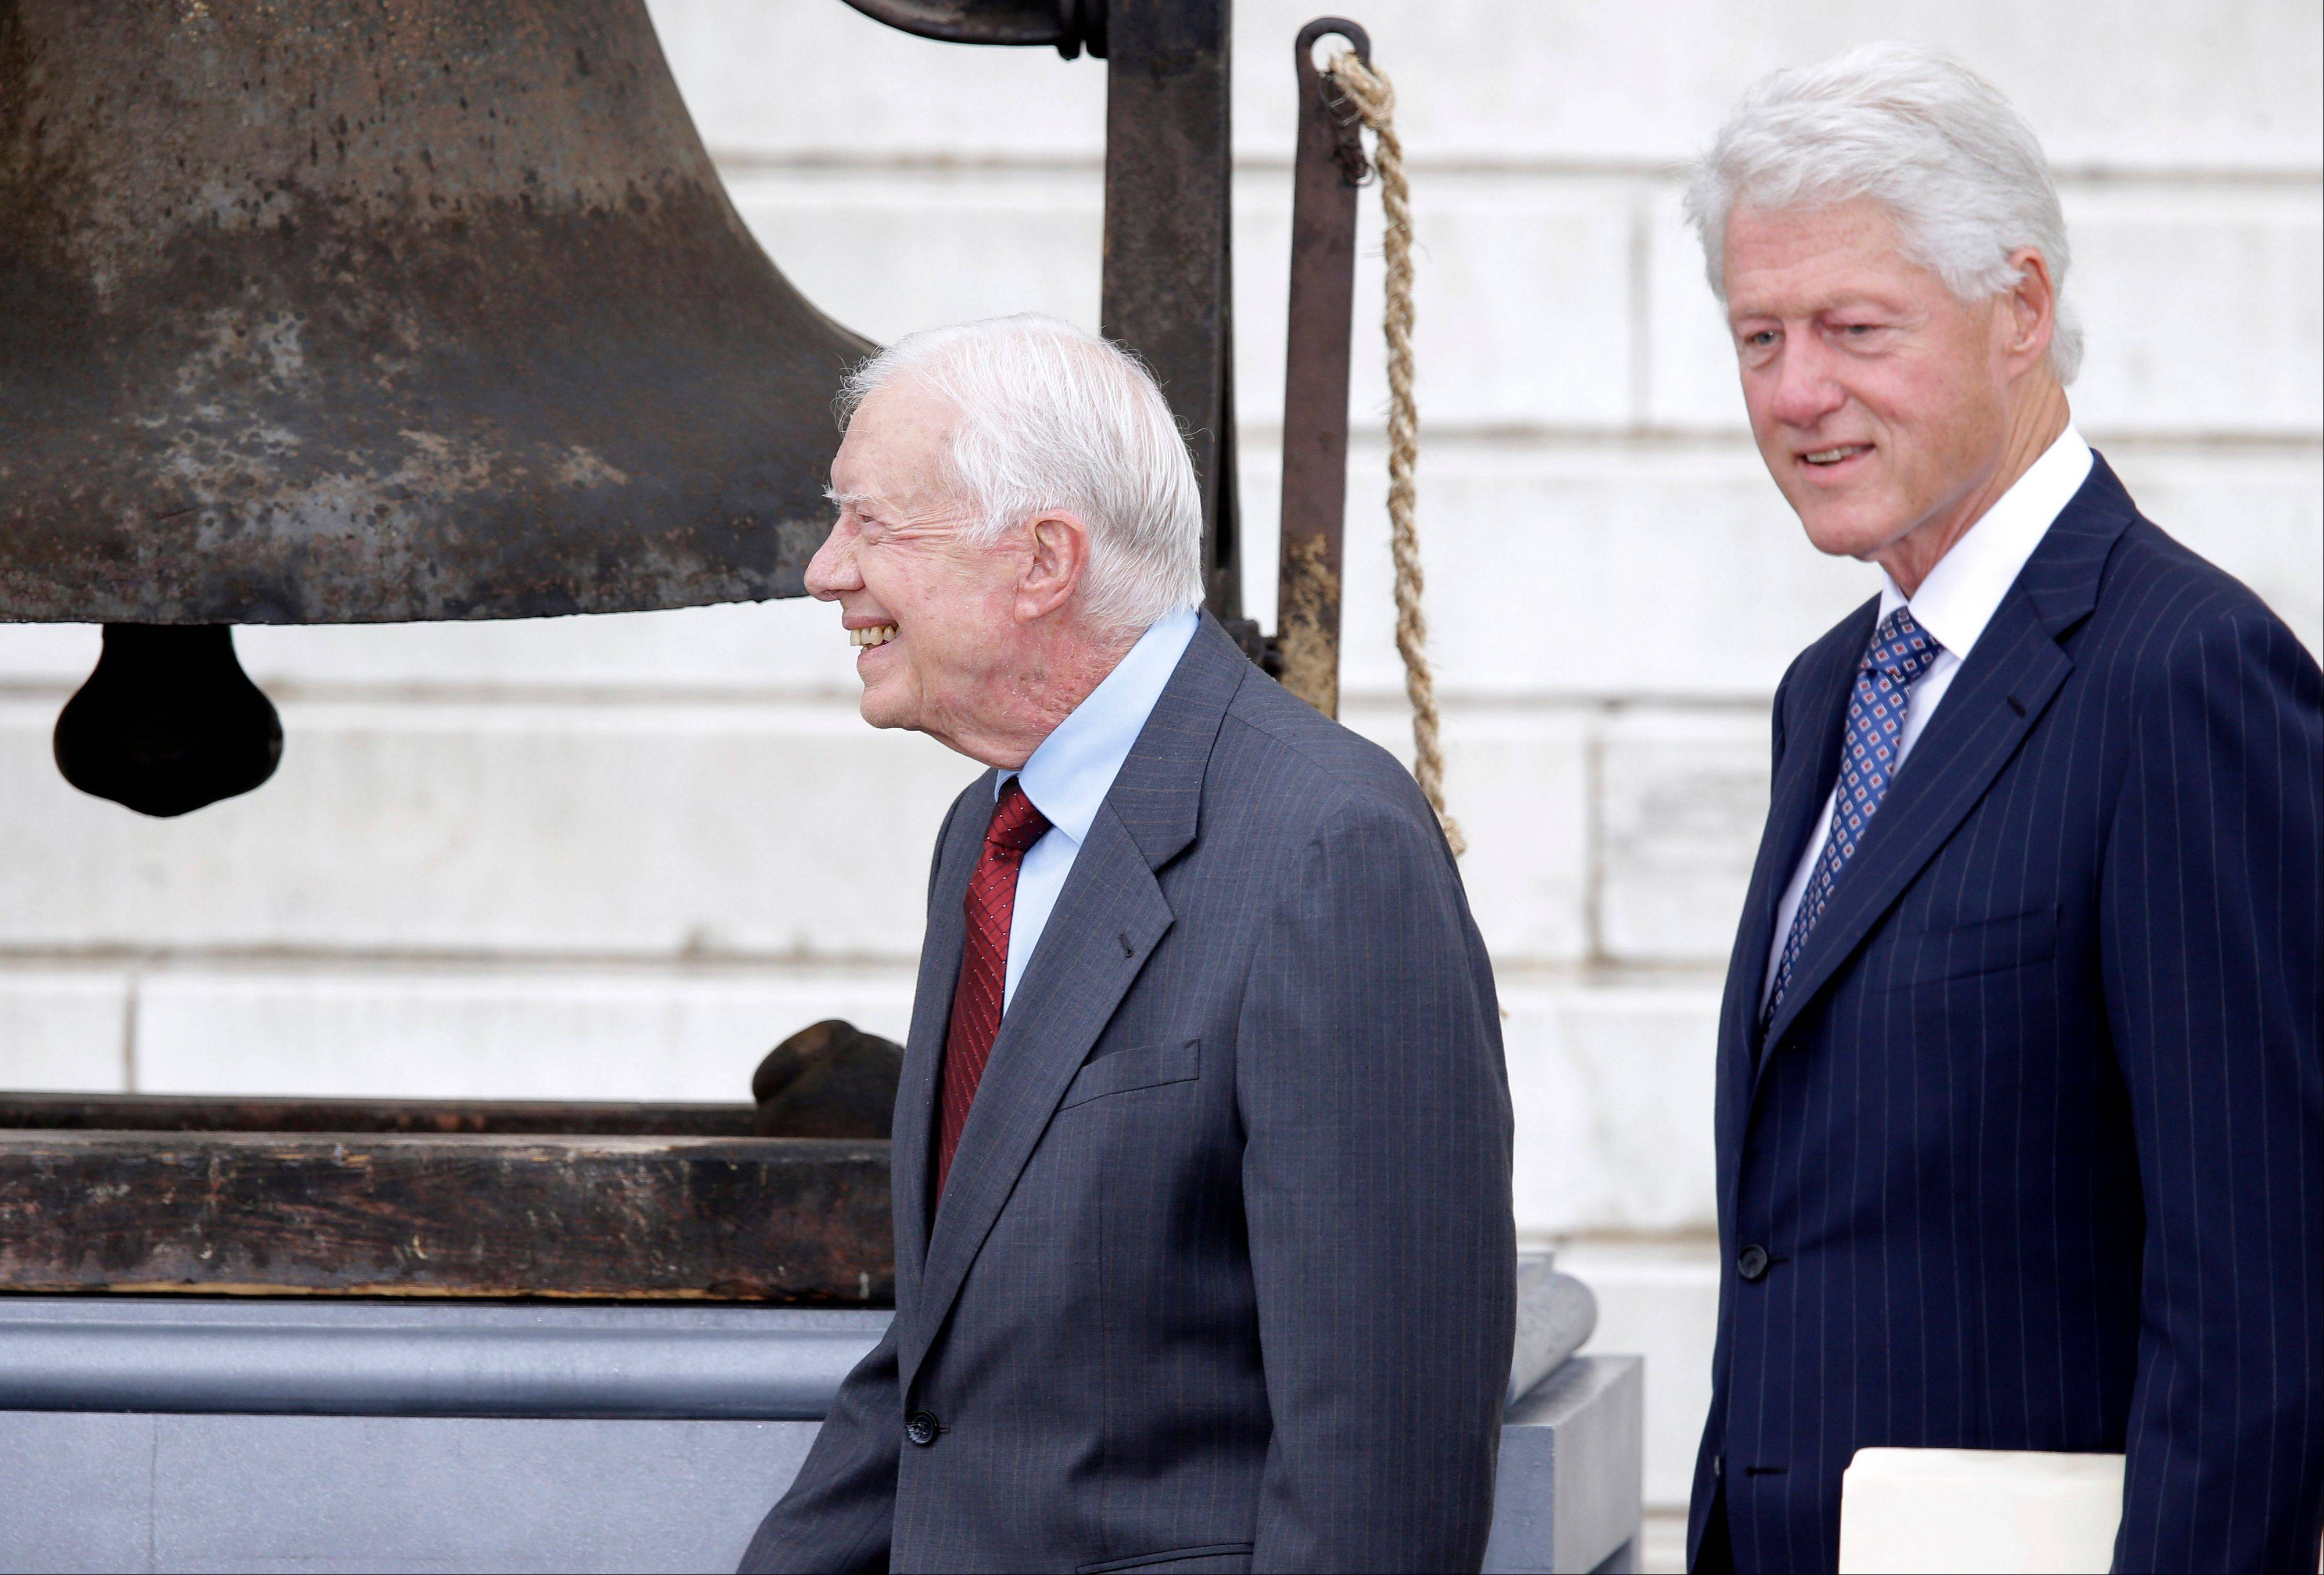 Former Presidents Jimmy Carter and Bill Clinton arrive at the Let Freedom Ring ceremony.